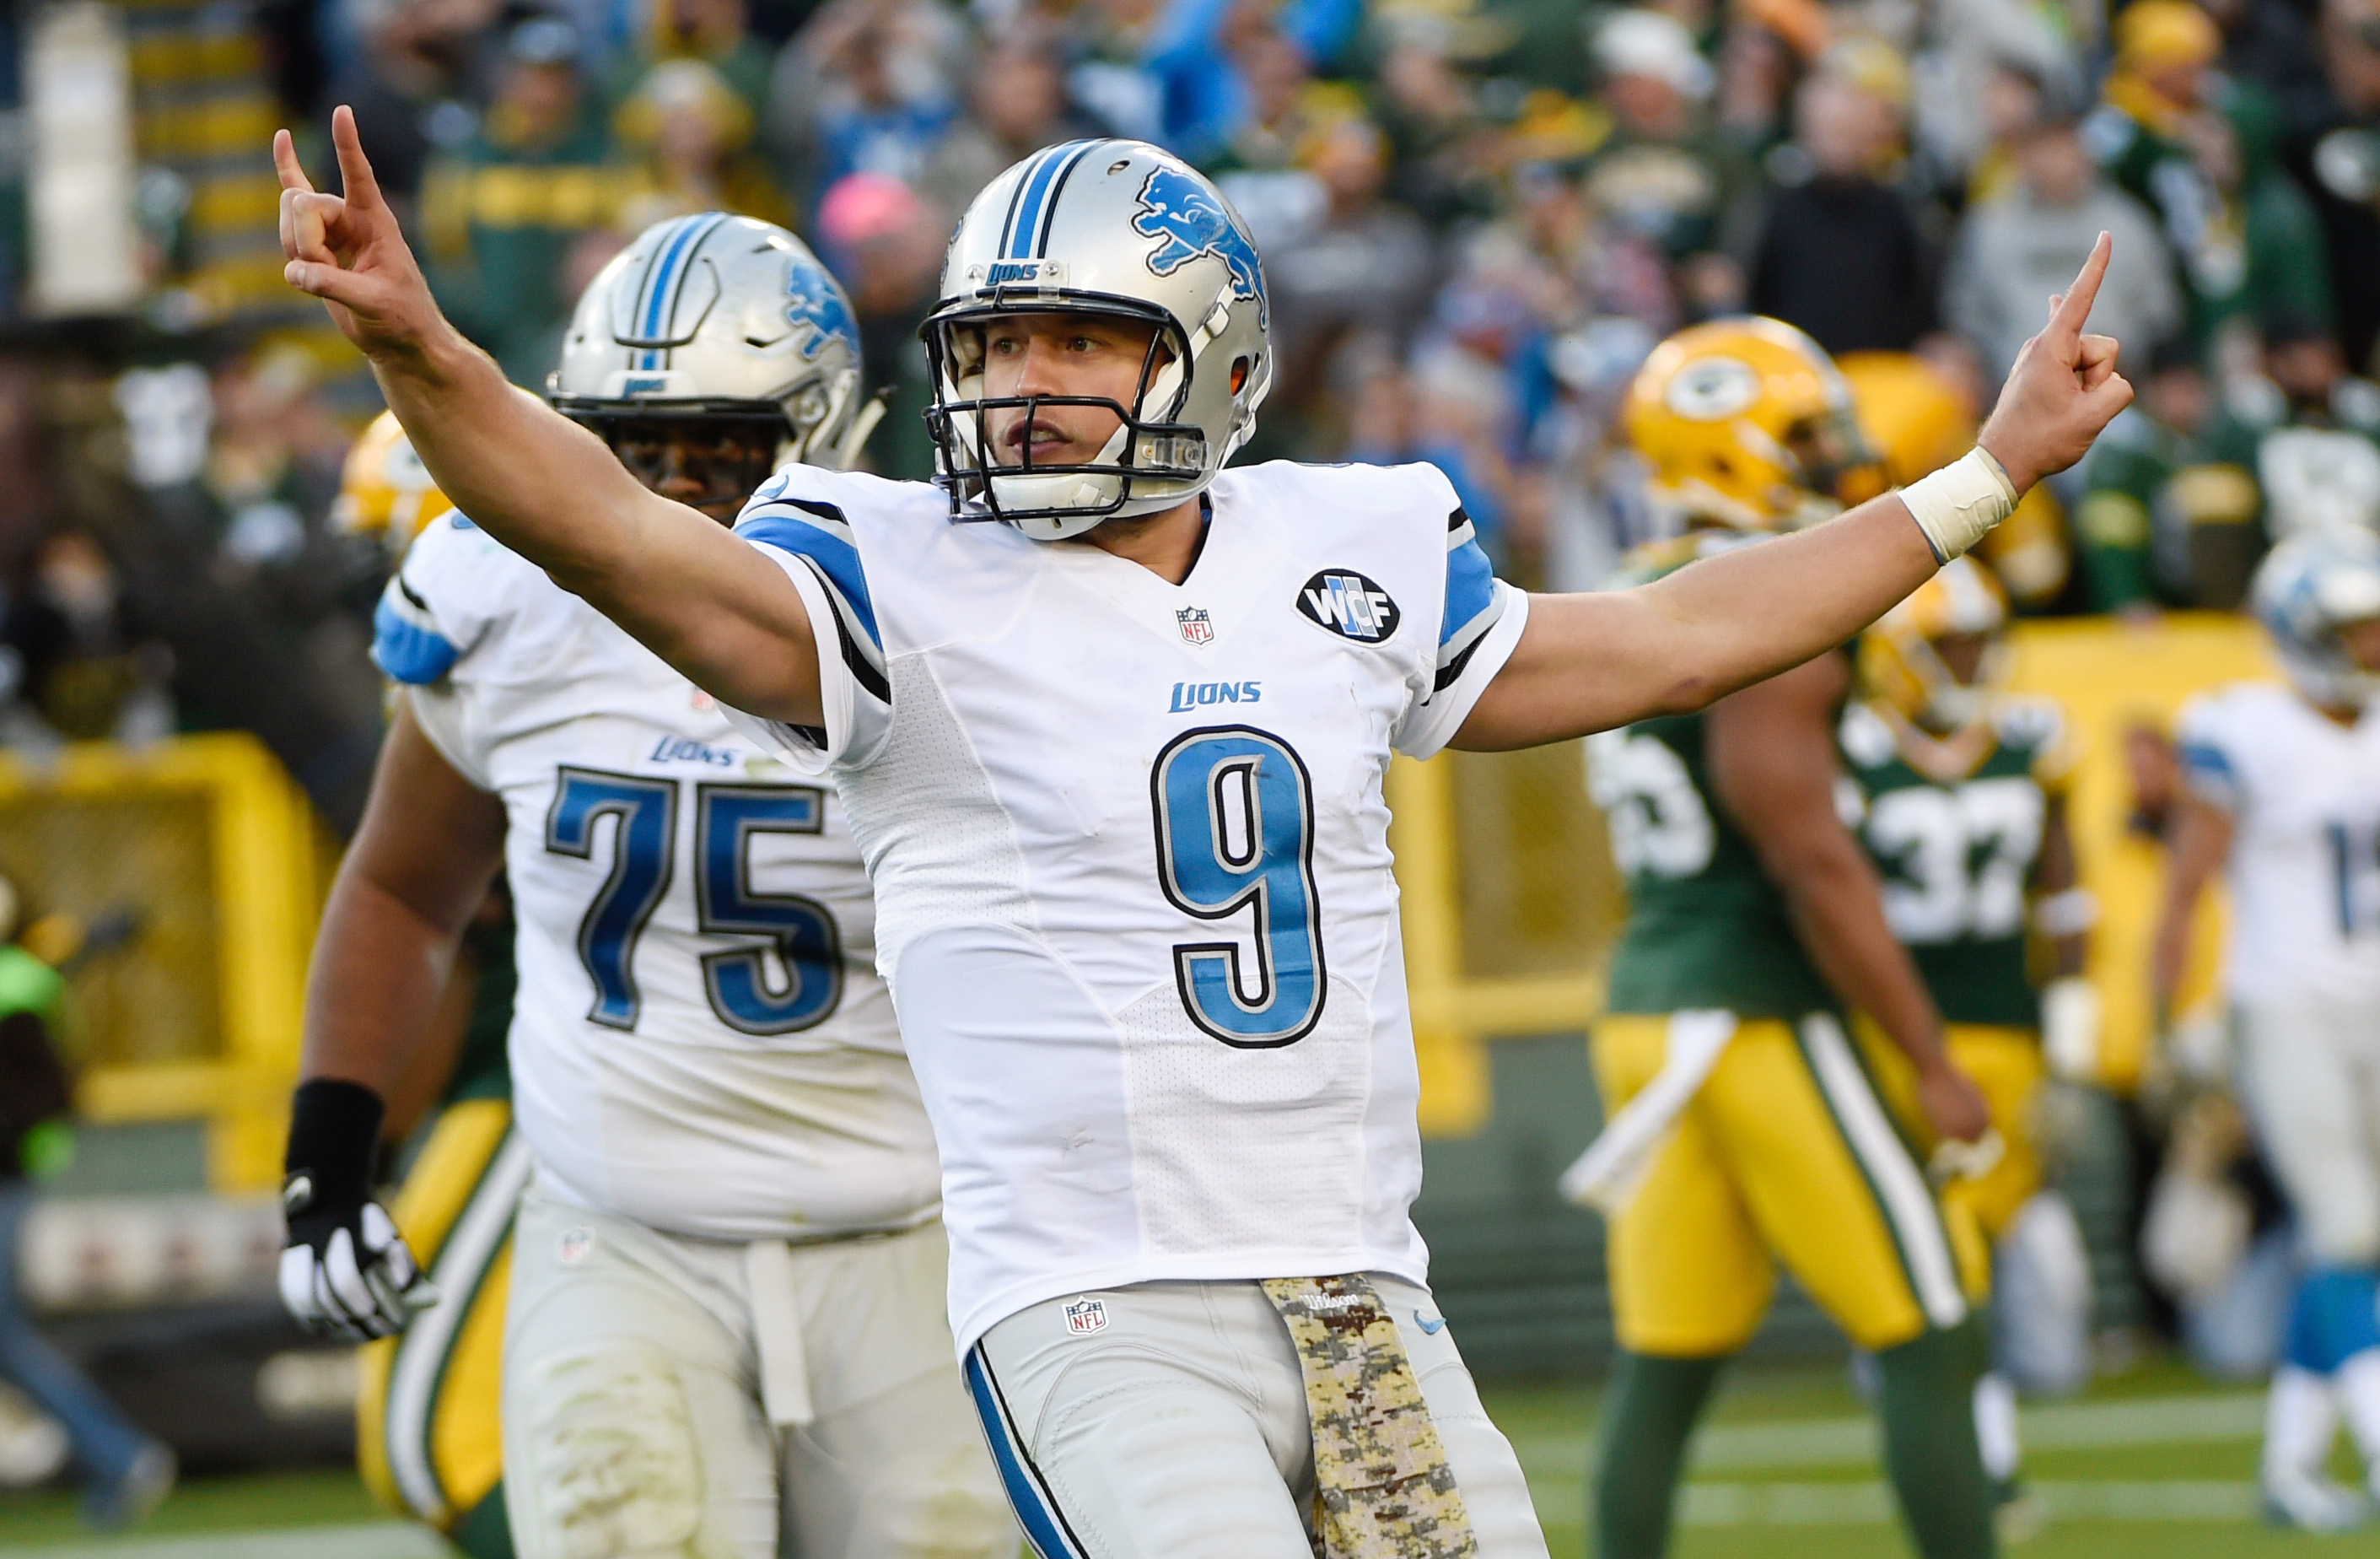 Afford Lions Lambeau Another Loss 3 Week In Storylines 9 Nfl Can't Watch - To